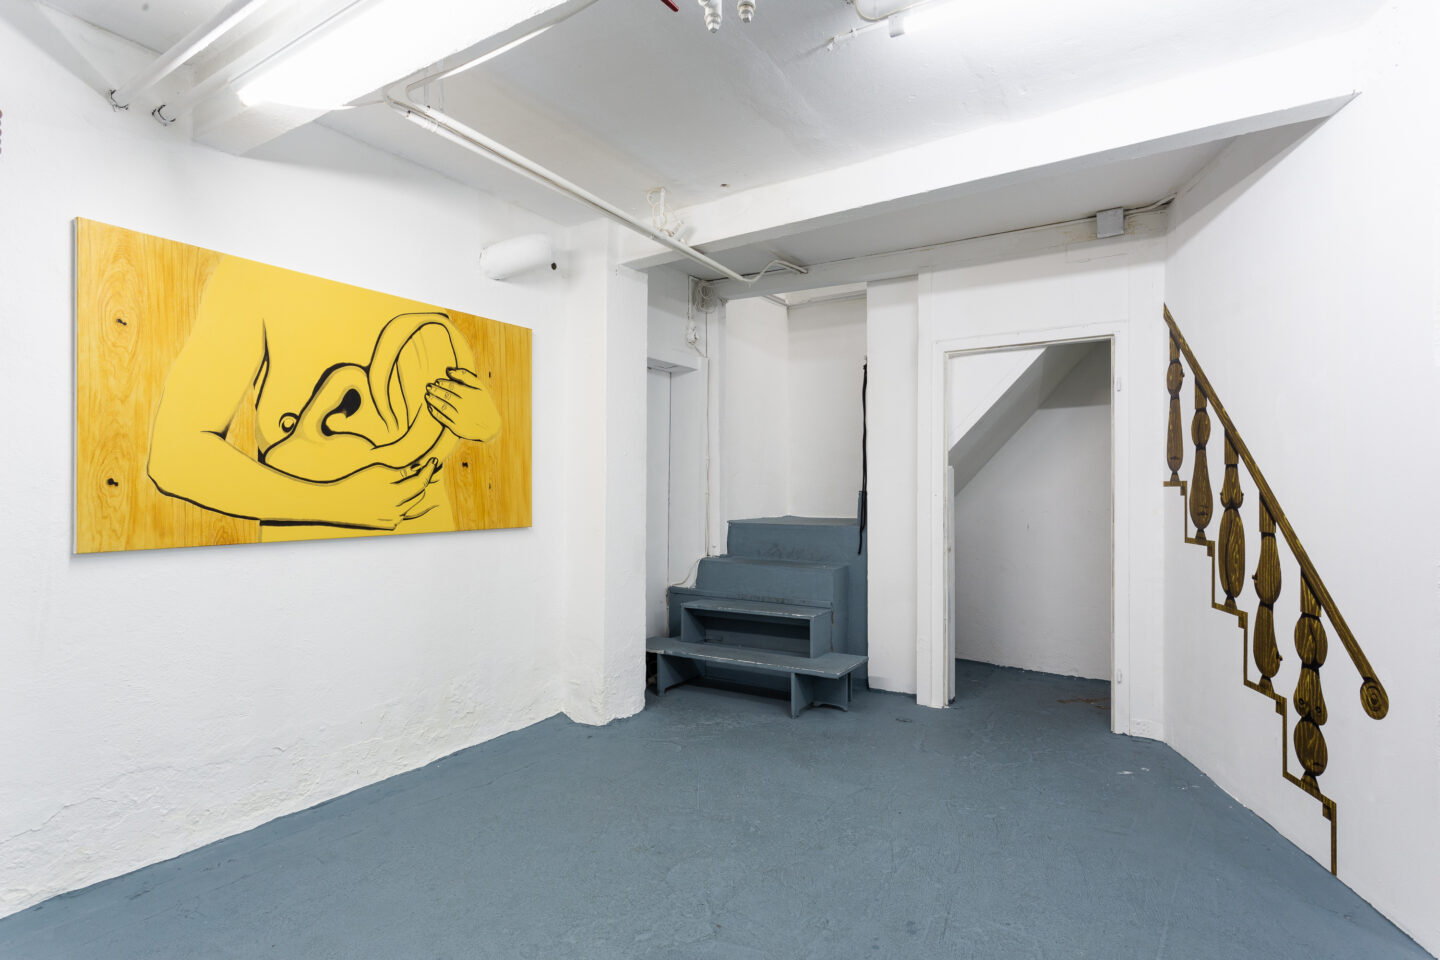 Exhibition View Groupshow «Sarah Margnetti & Megan Rooney» at Last Tango, Zurich / Photo: Kilian Bannwart / Courtesy: the artist and Last Tango